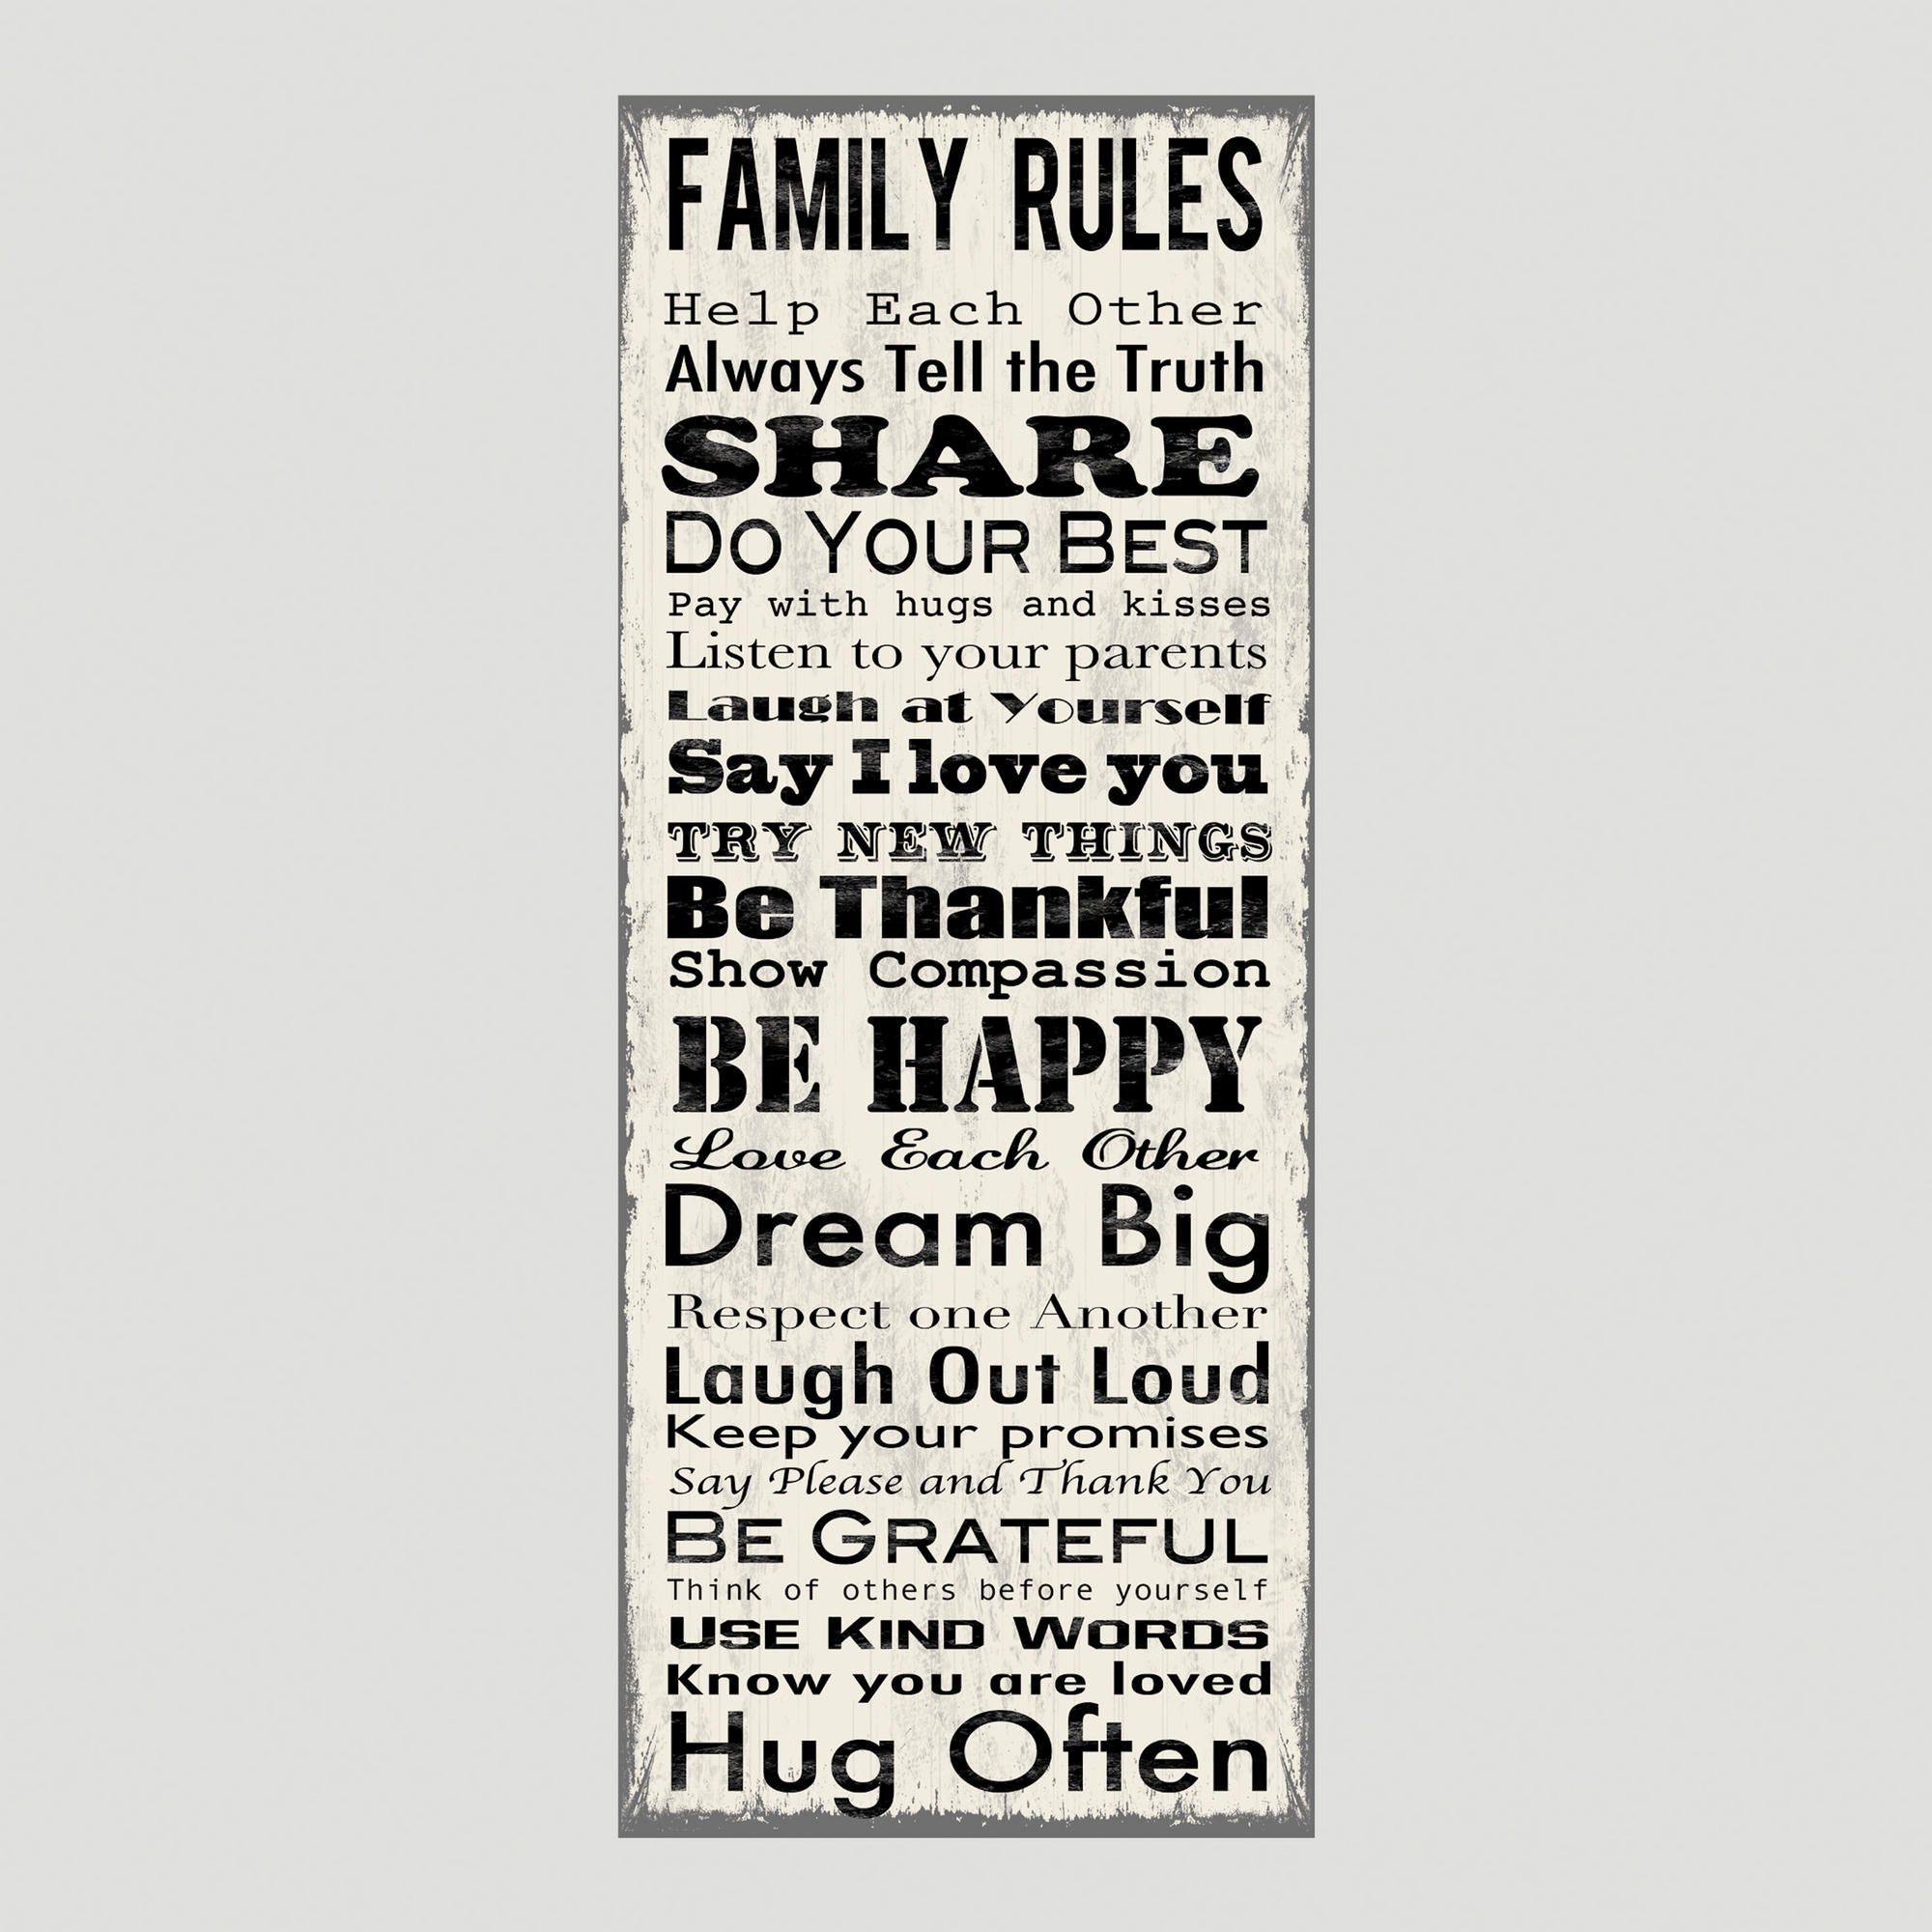 Family Rules Wall Art family rules canvas wall art decal | family rules, wall art decal